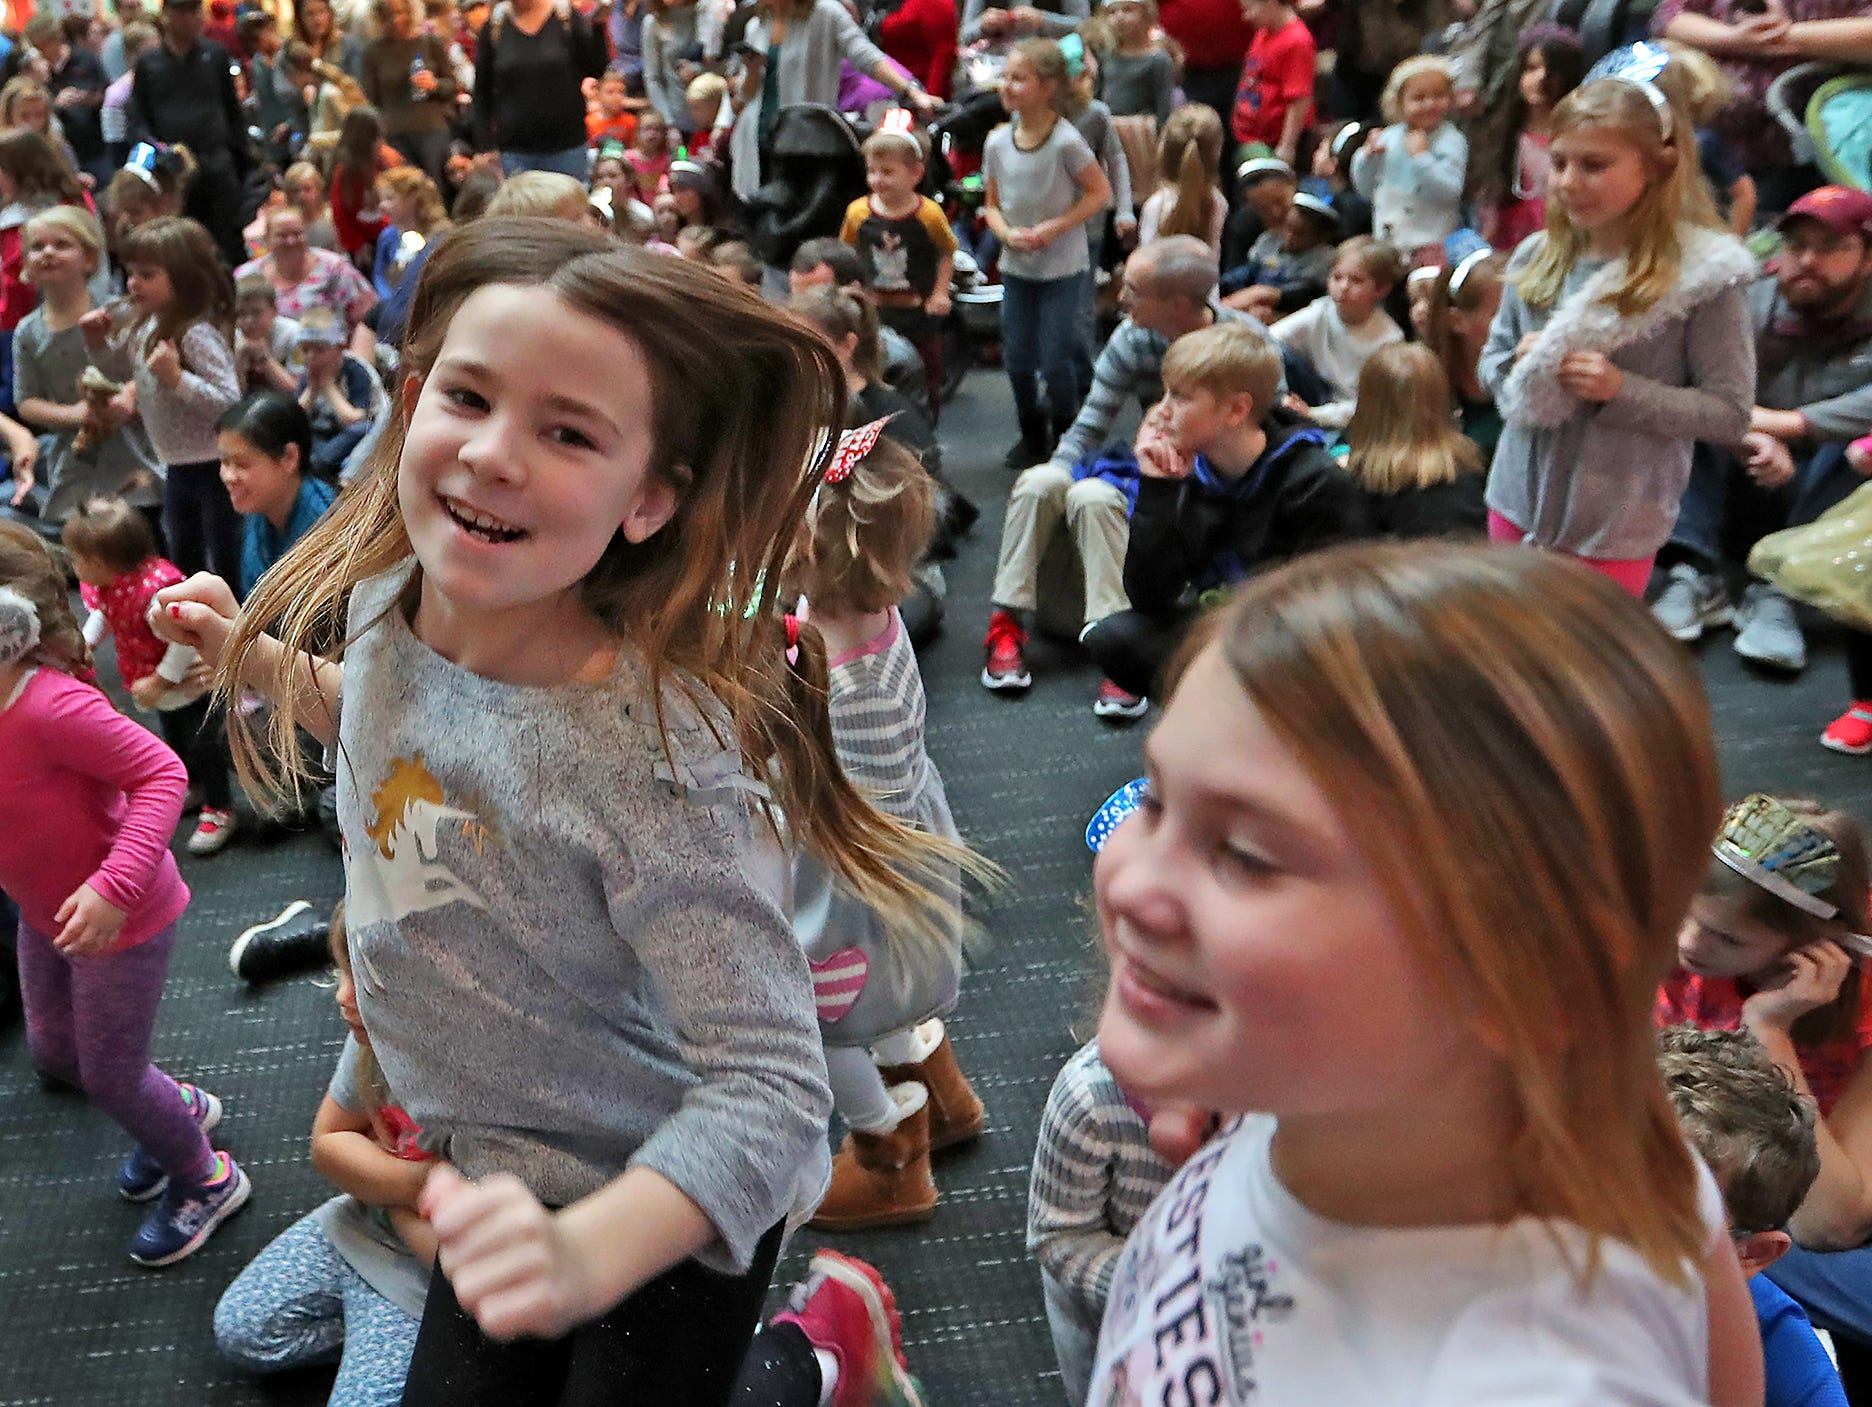 Ella Skinner, left, and Katie Jacobs join others in dancing as the Zak Morgan group performs at the Countdown to noon celebration at the Children's Museum of Indianapolis, Monday, Dec. 31, 2018.